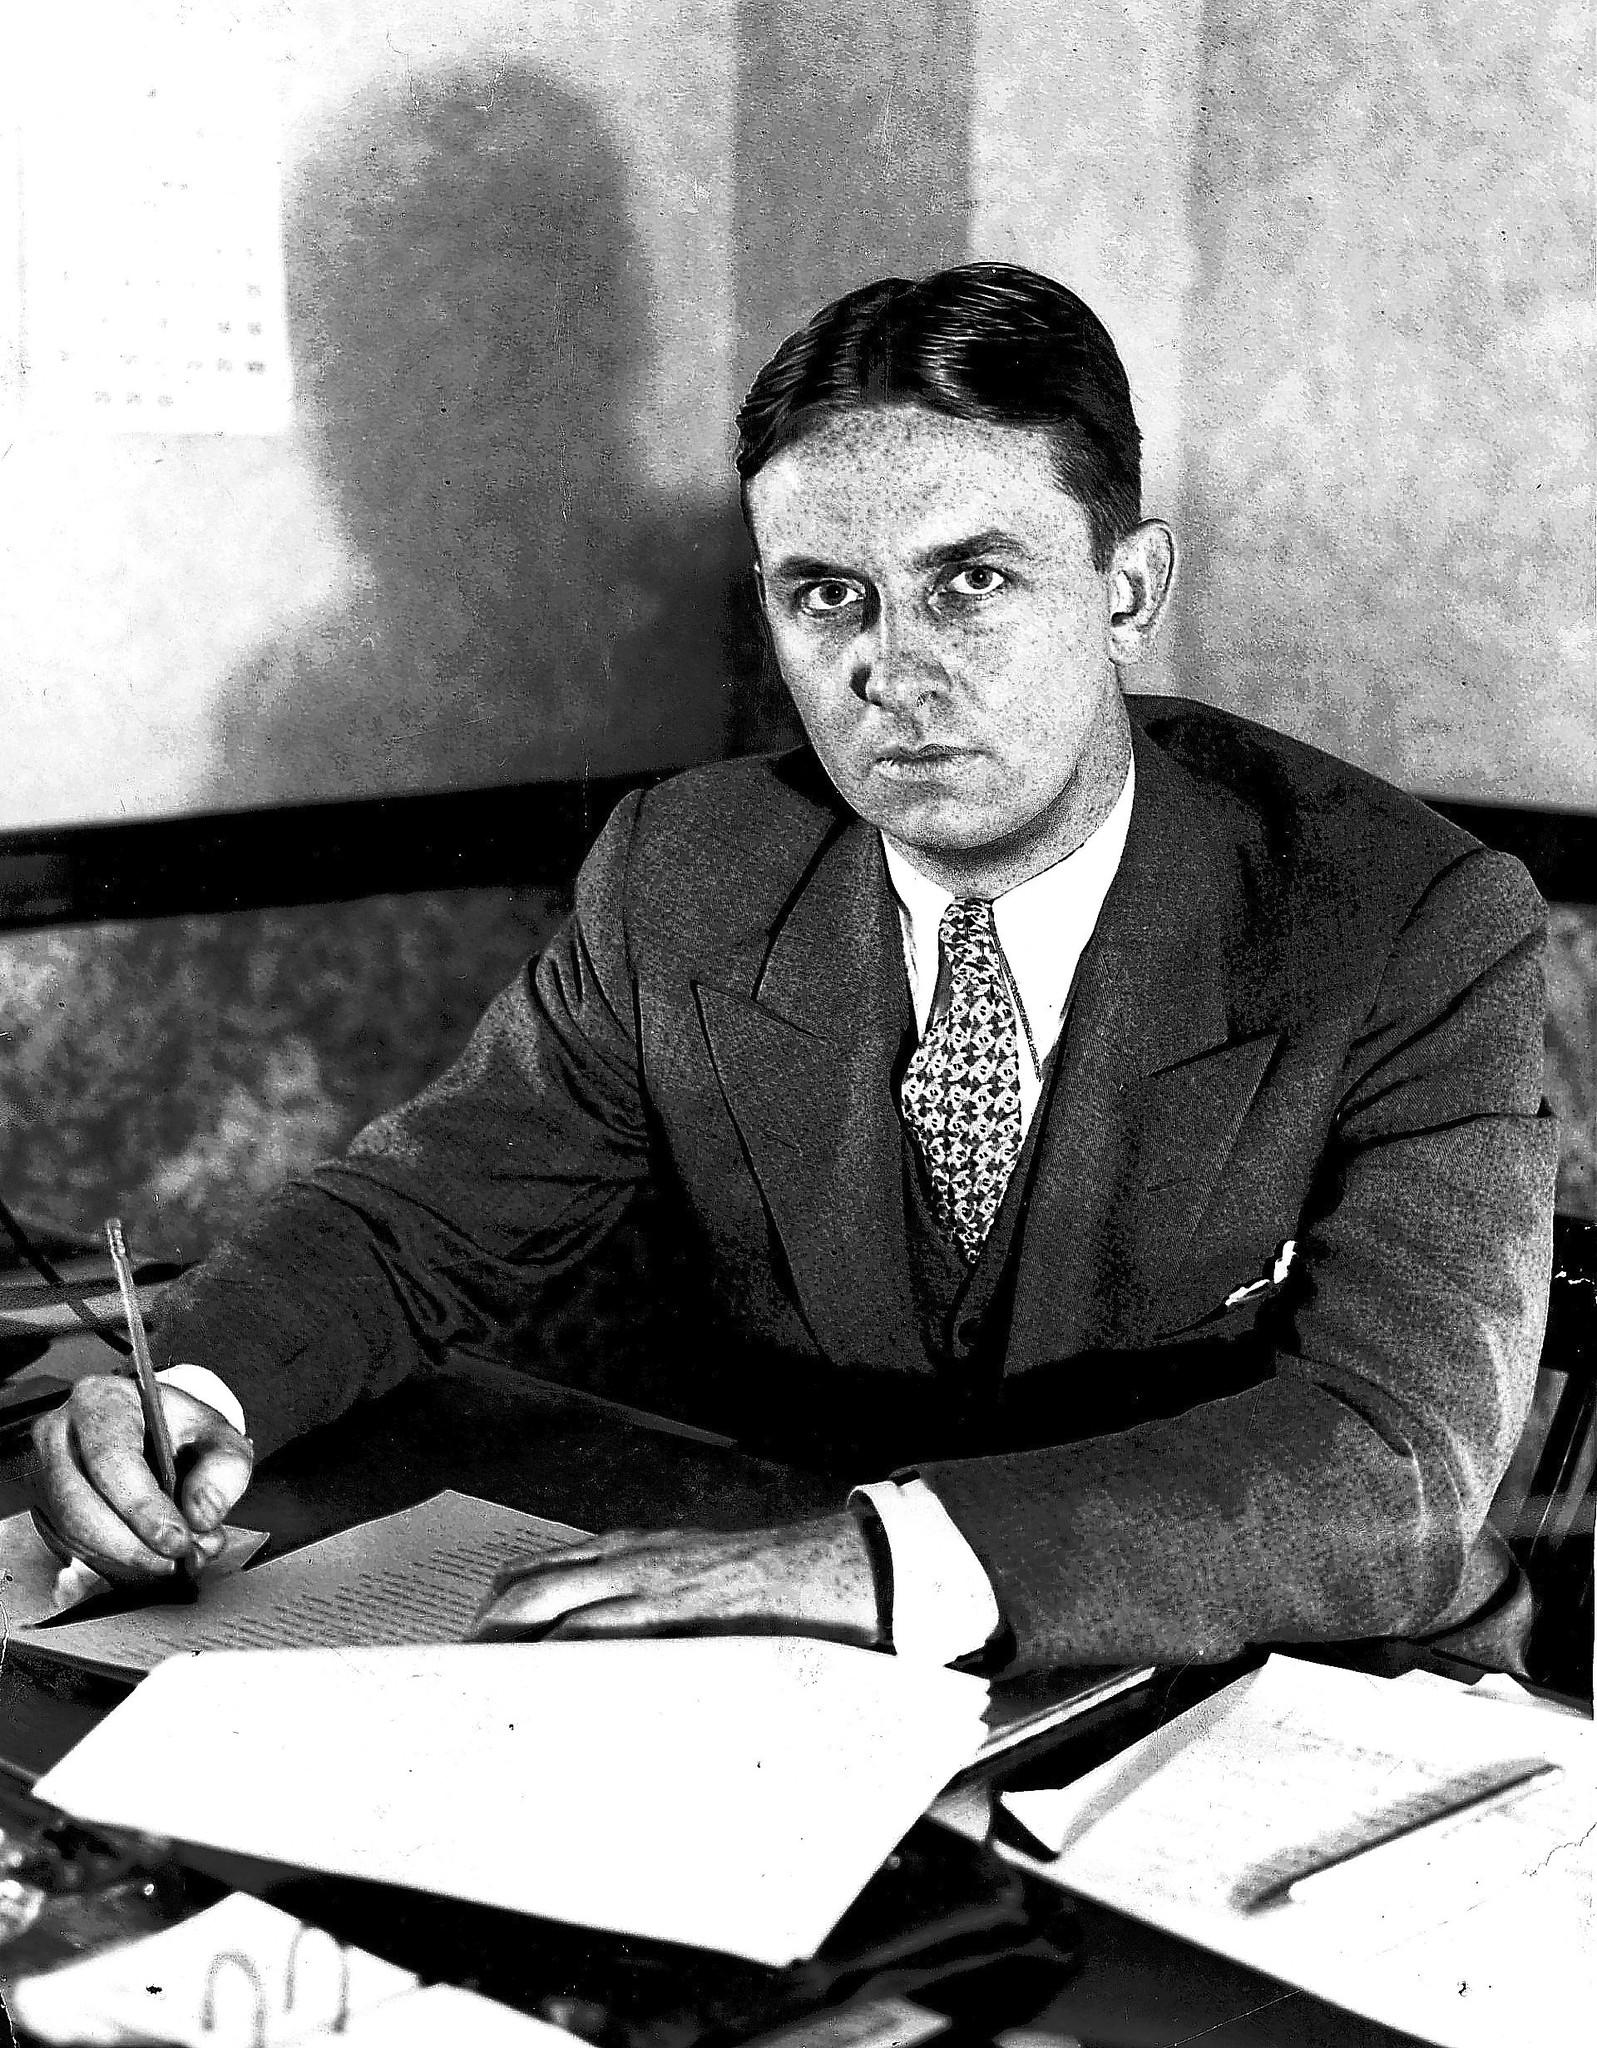 Federal agent Eliot Ness and his team were tasked with harassing Al Capone's outfit and squeezing the mob boss's income stream.